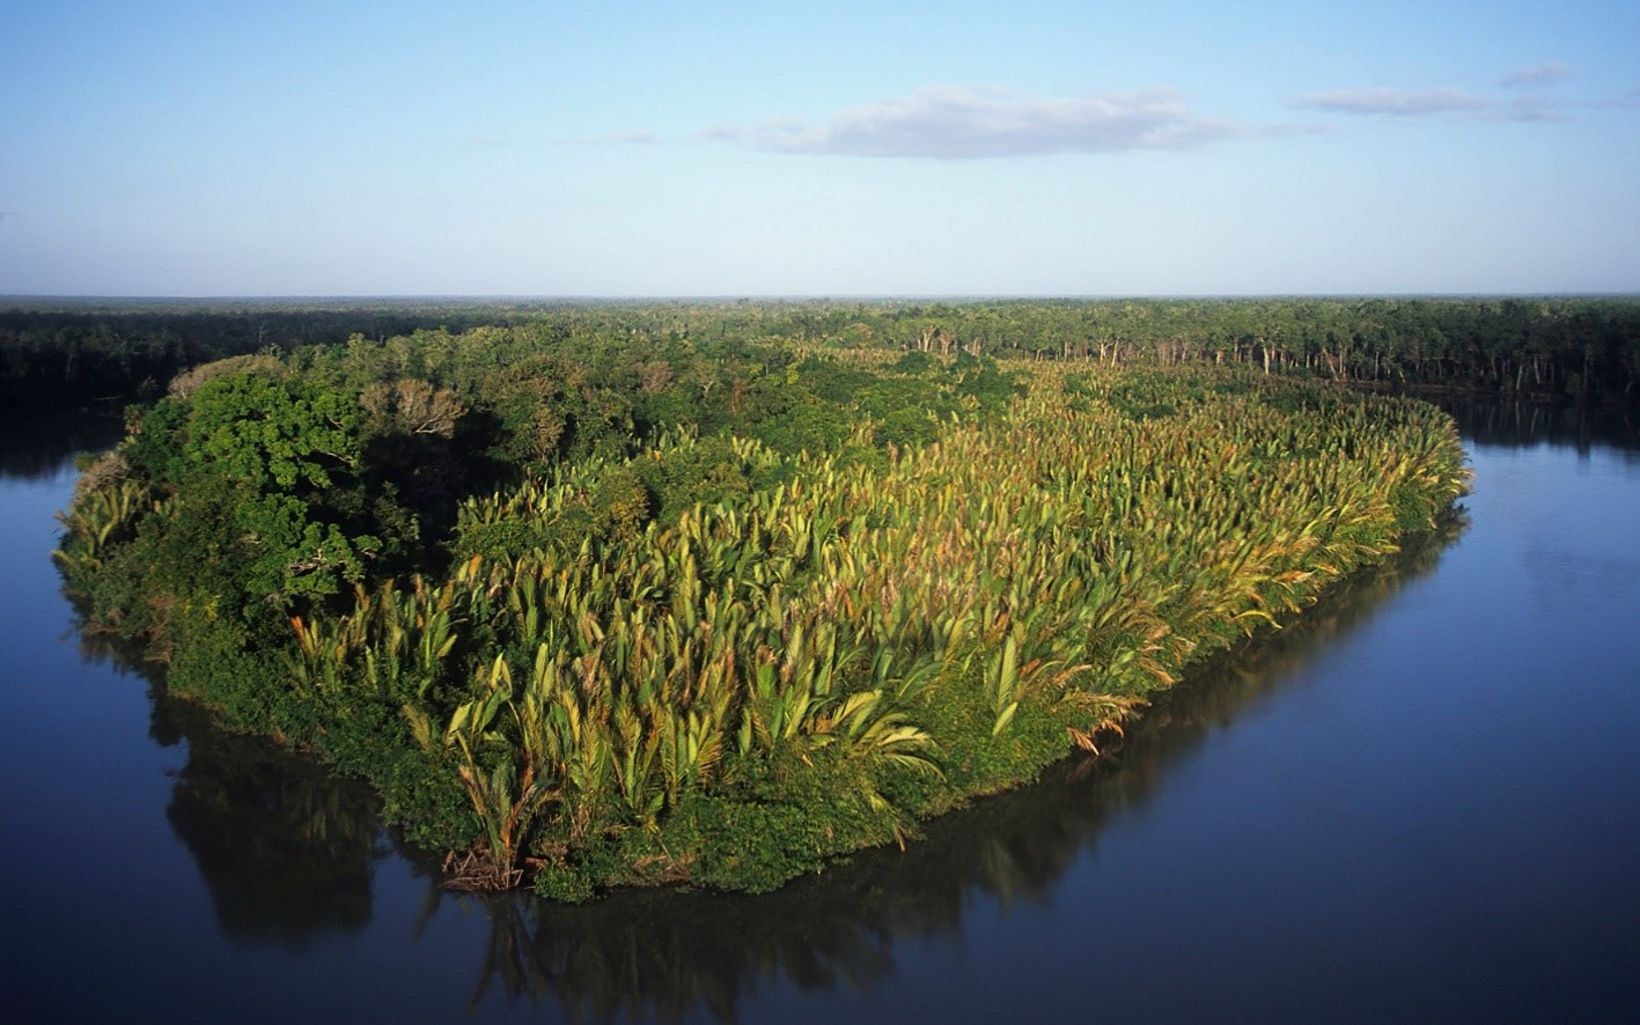 Nypa Palms line the 'Floating Islands' and river bank